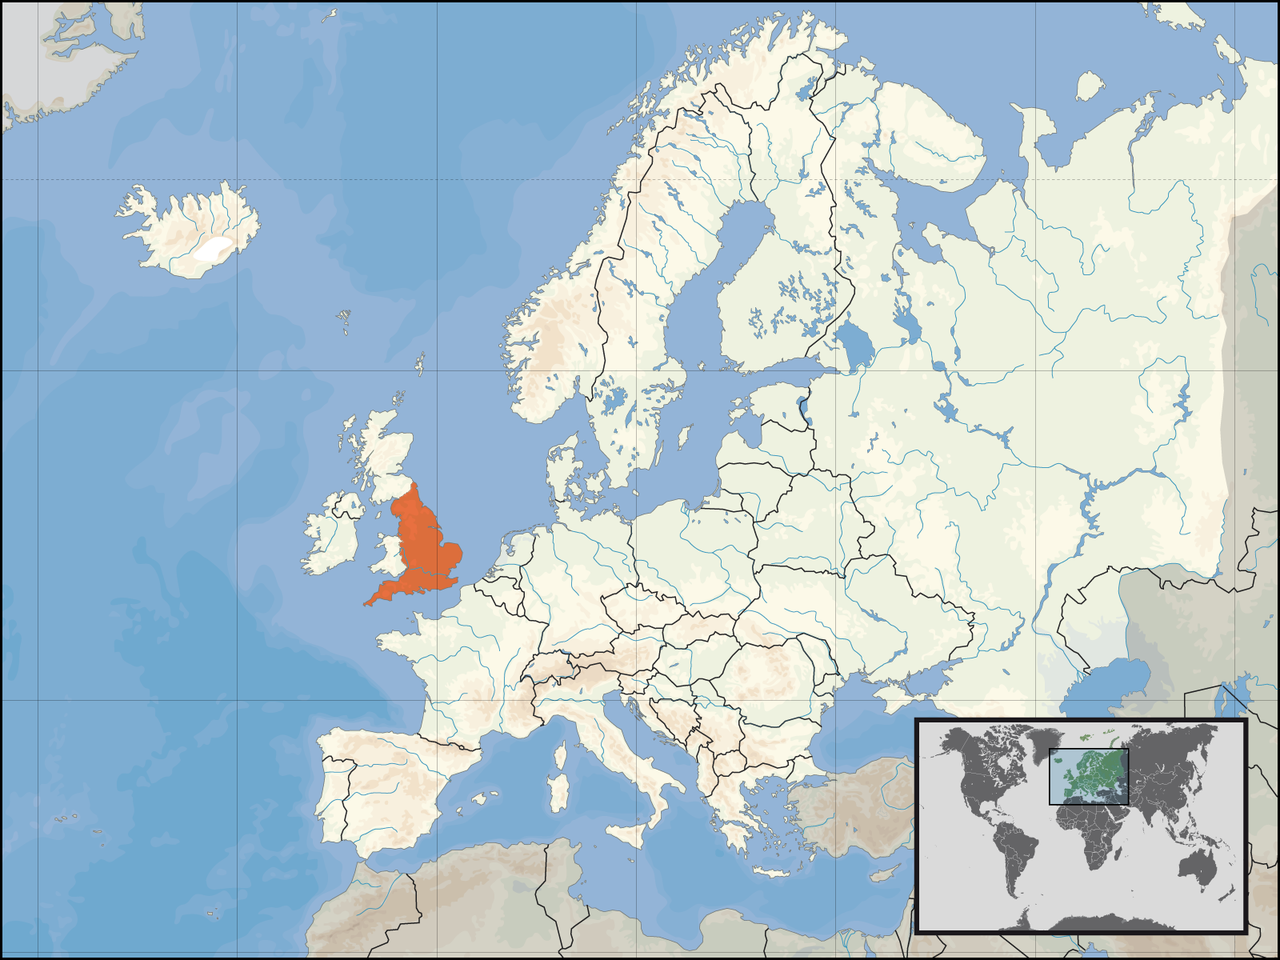 File:England Map Europe.PNG   Wikimedia Commons